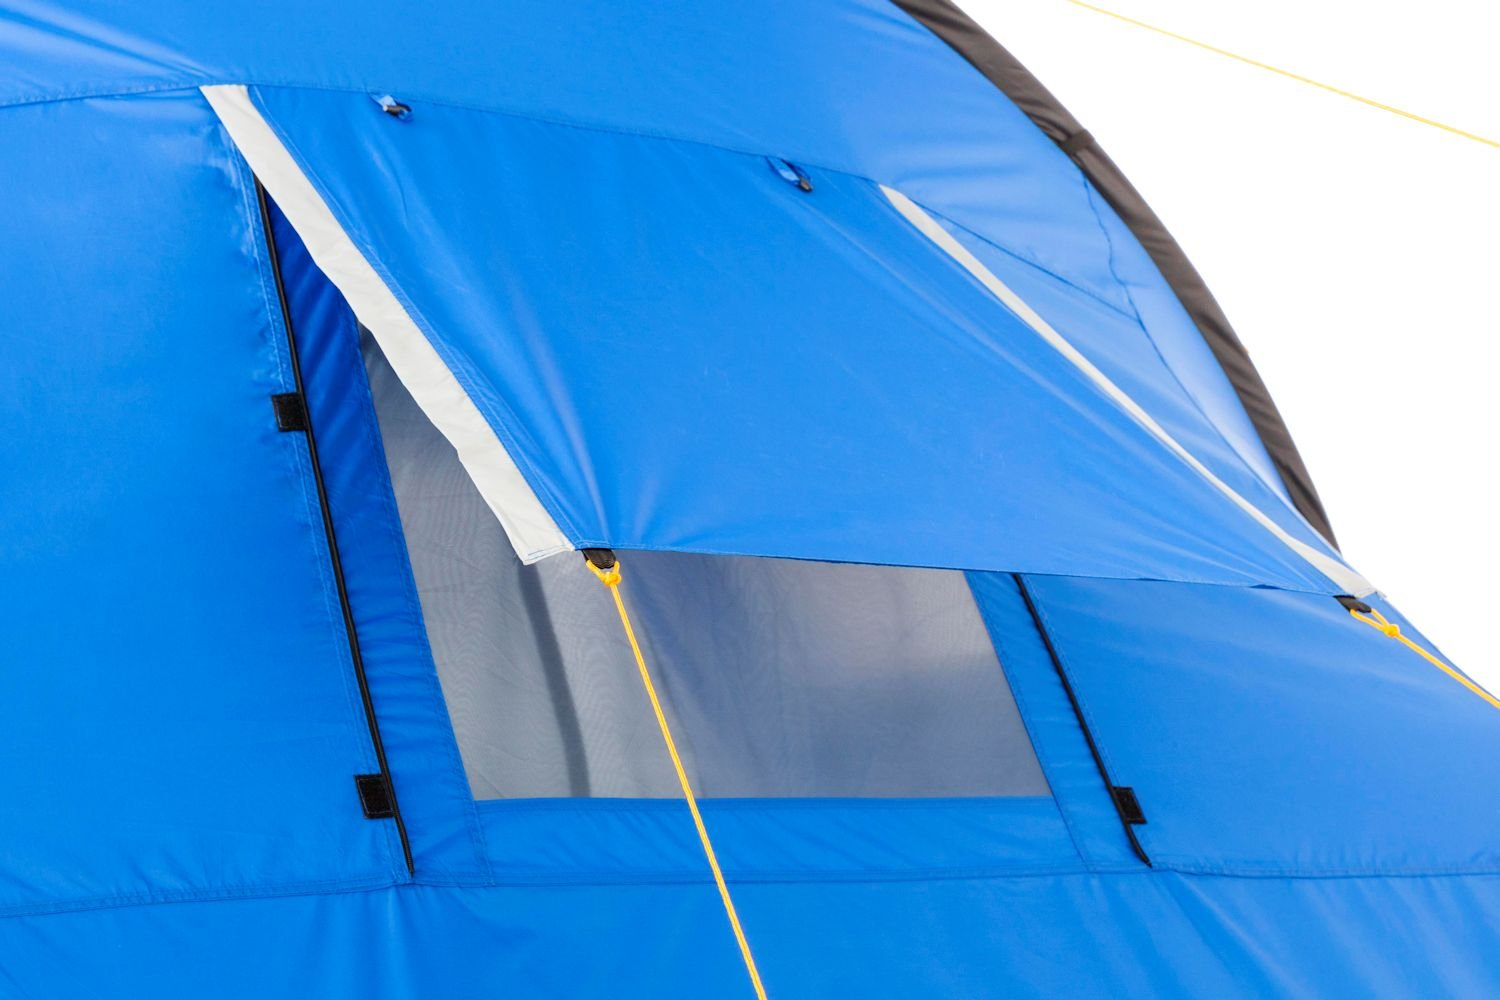 CampFeuer - Tunnel Tent, 4 Person, 410x250x190 cm, blue/grey 8